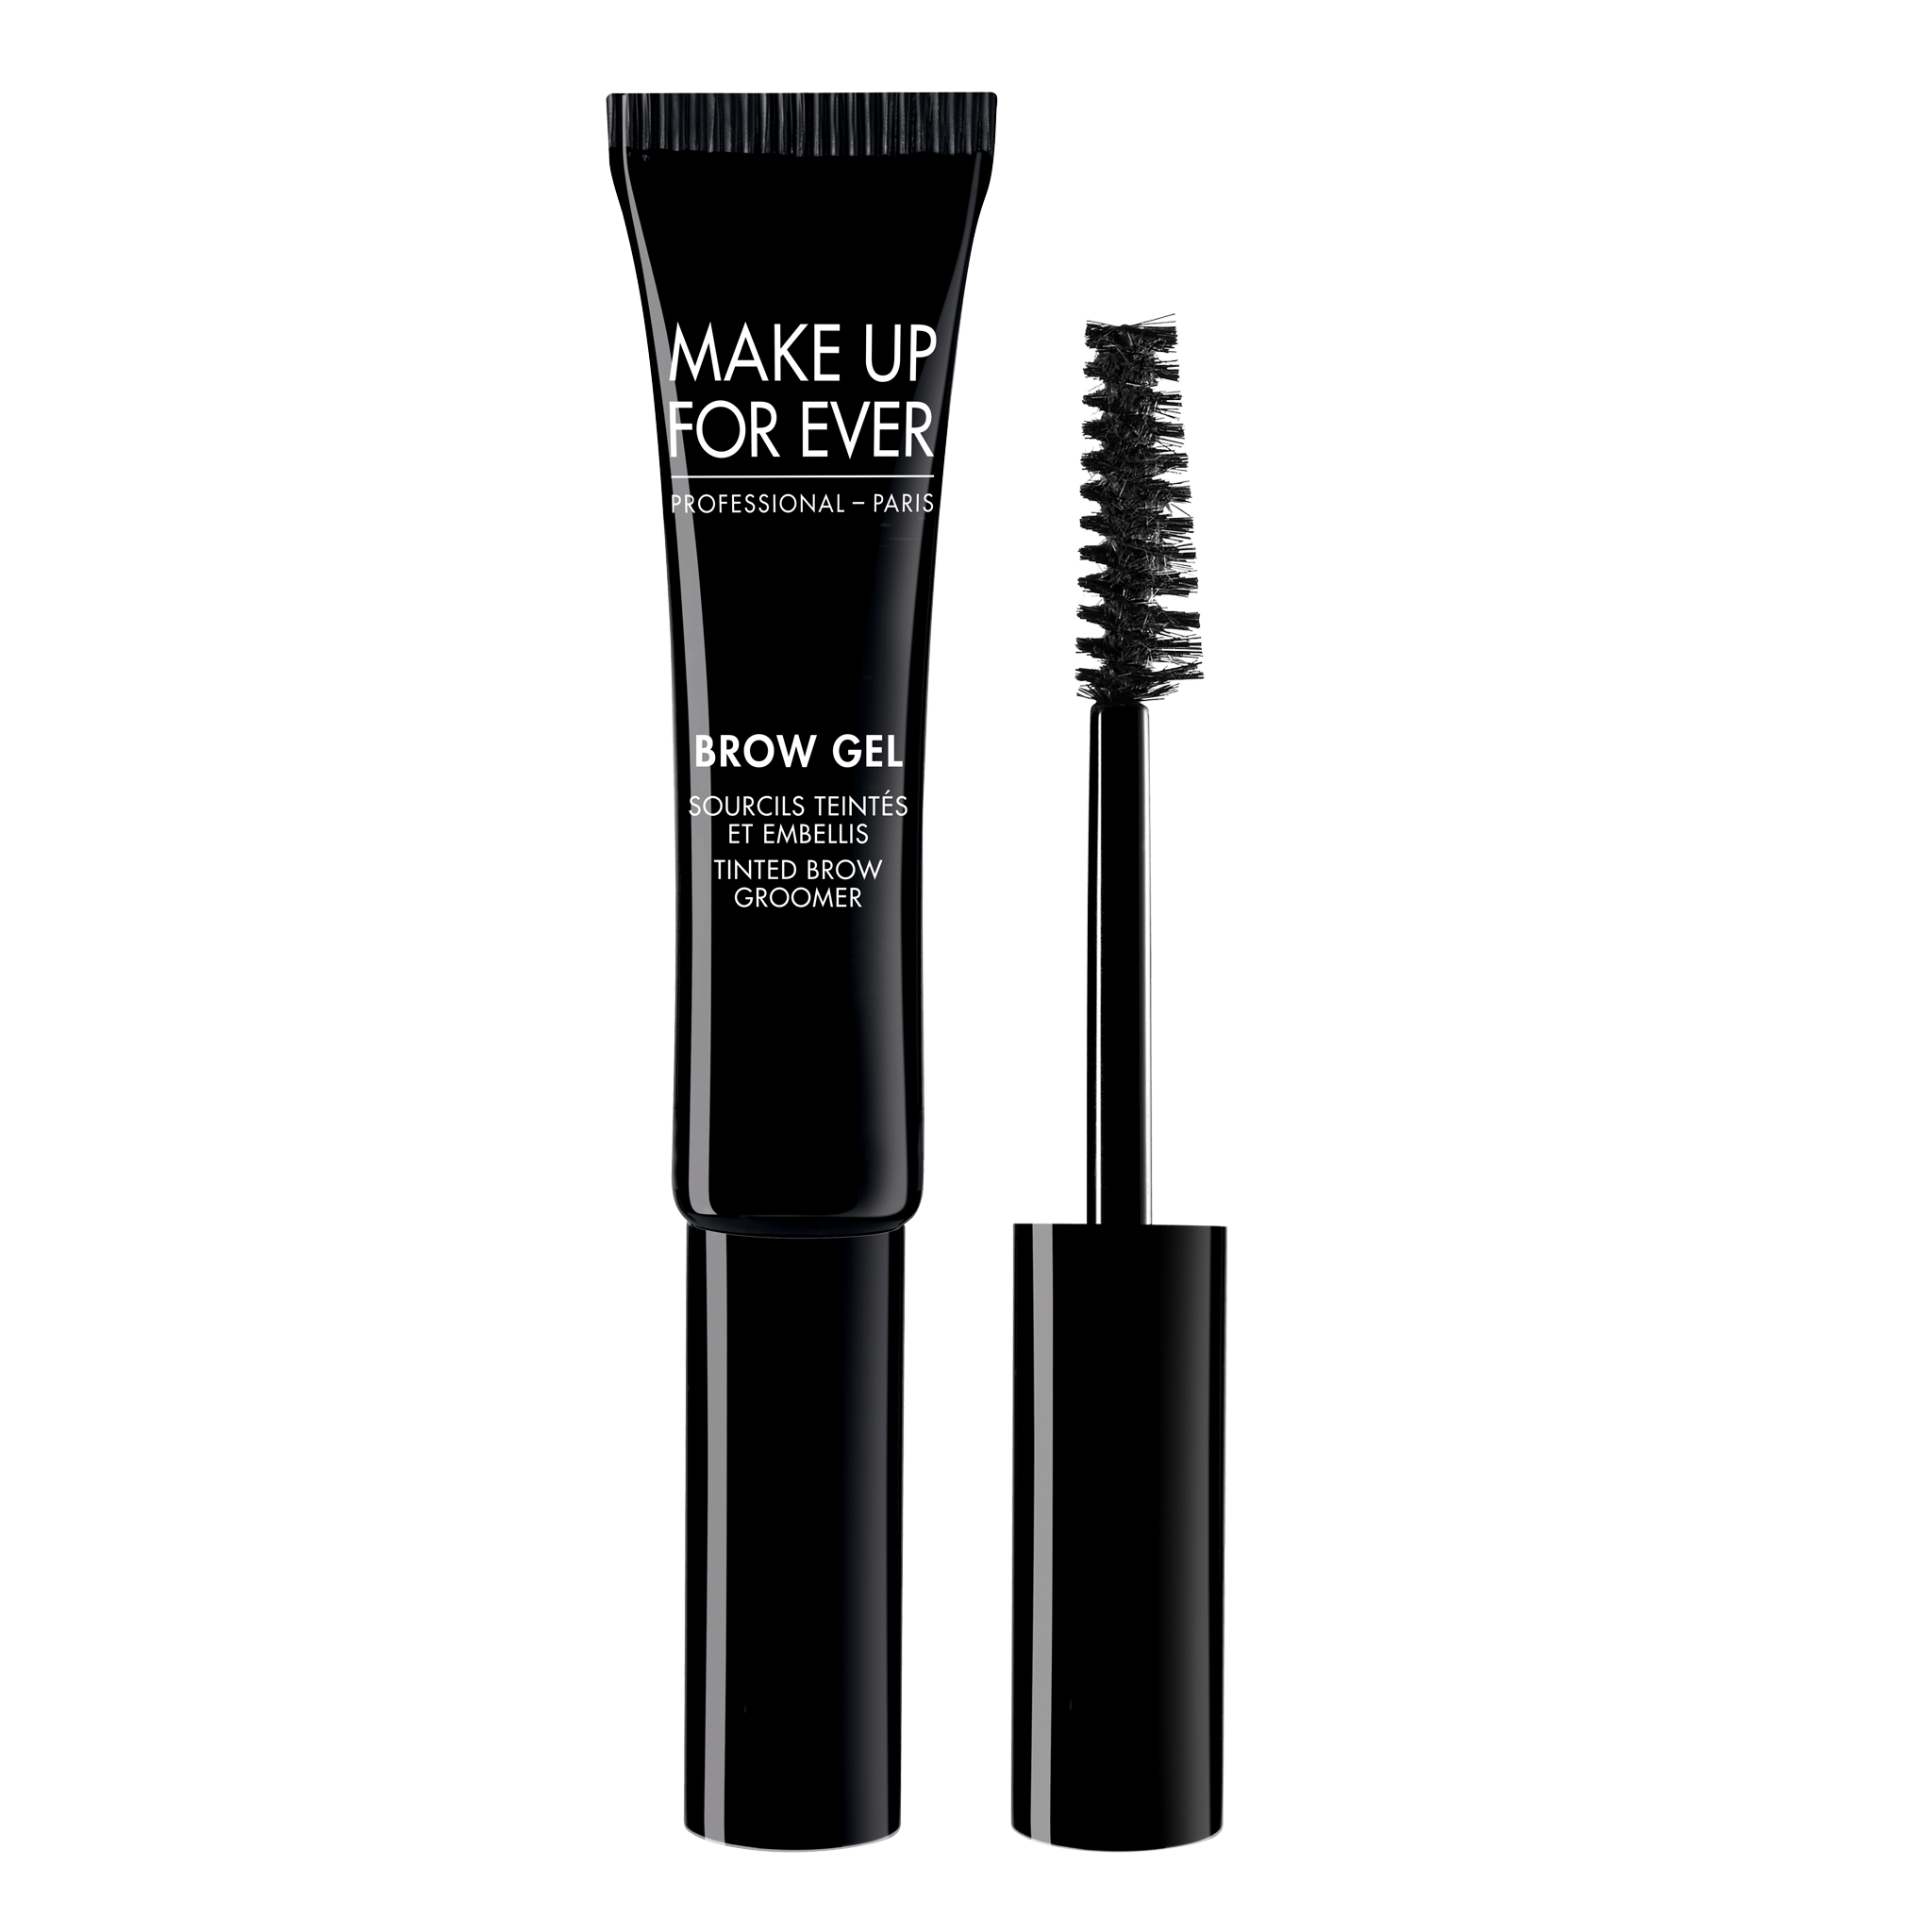 clip library library Brow Gel